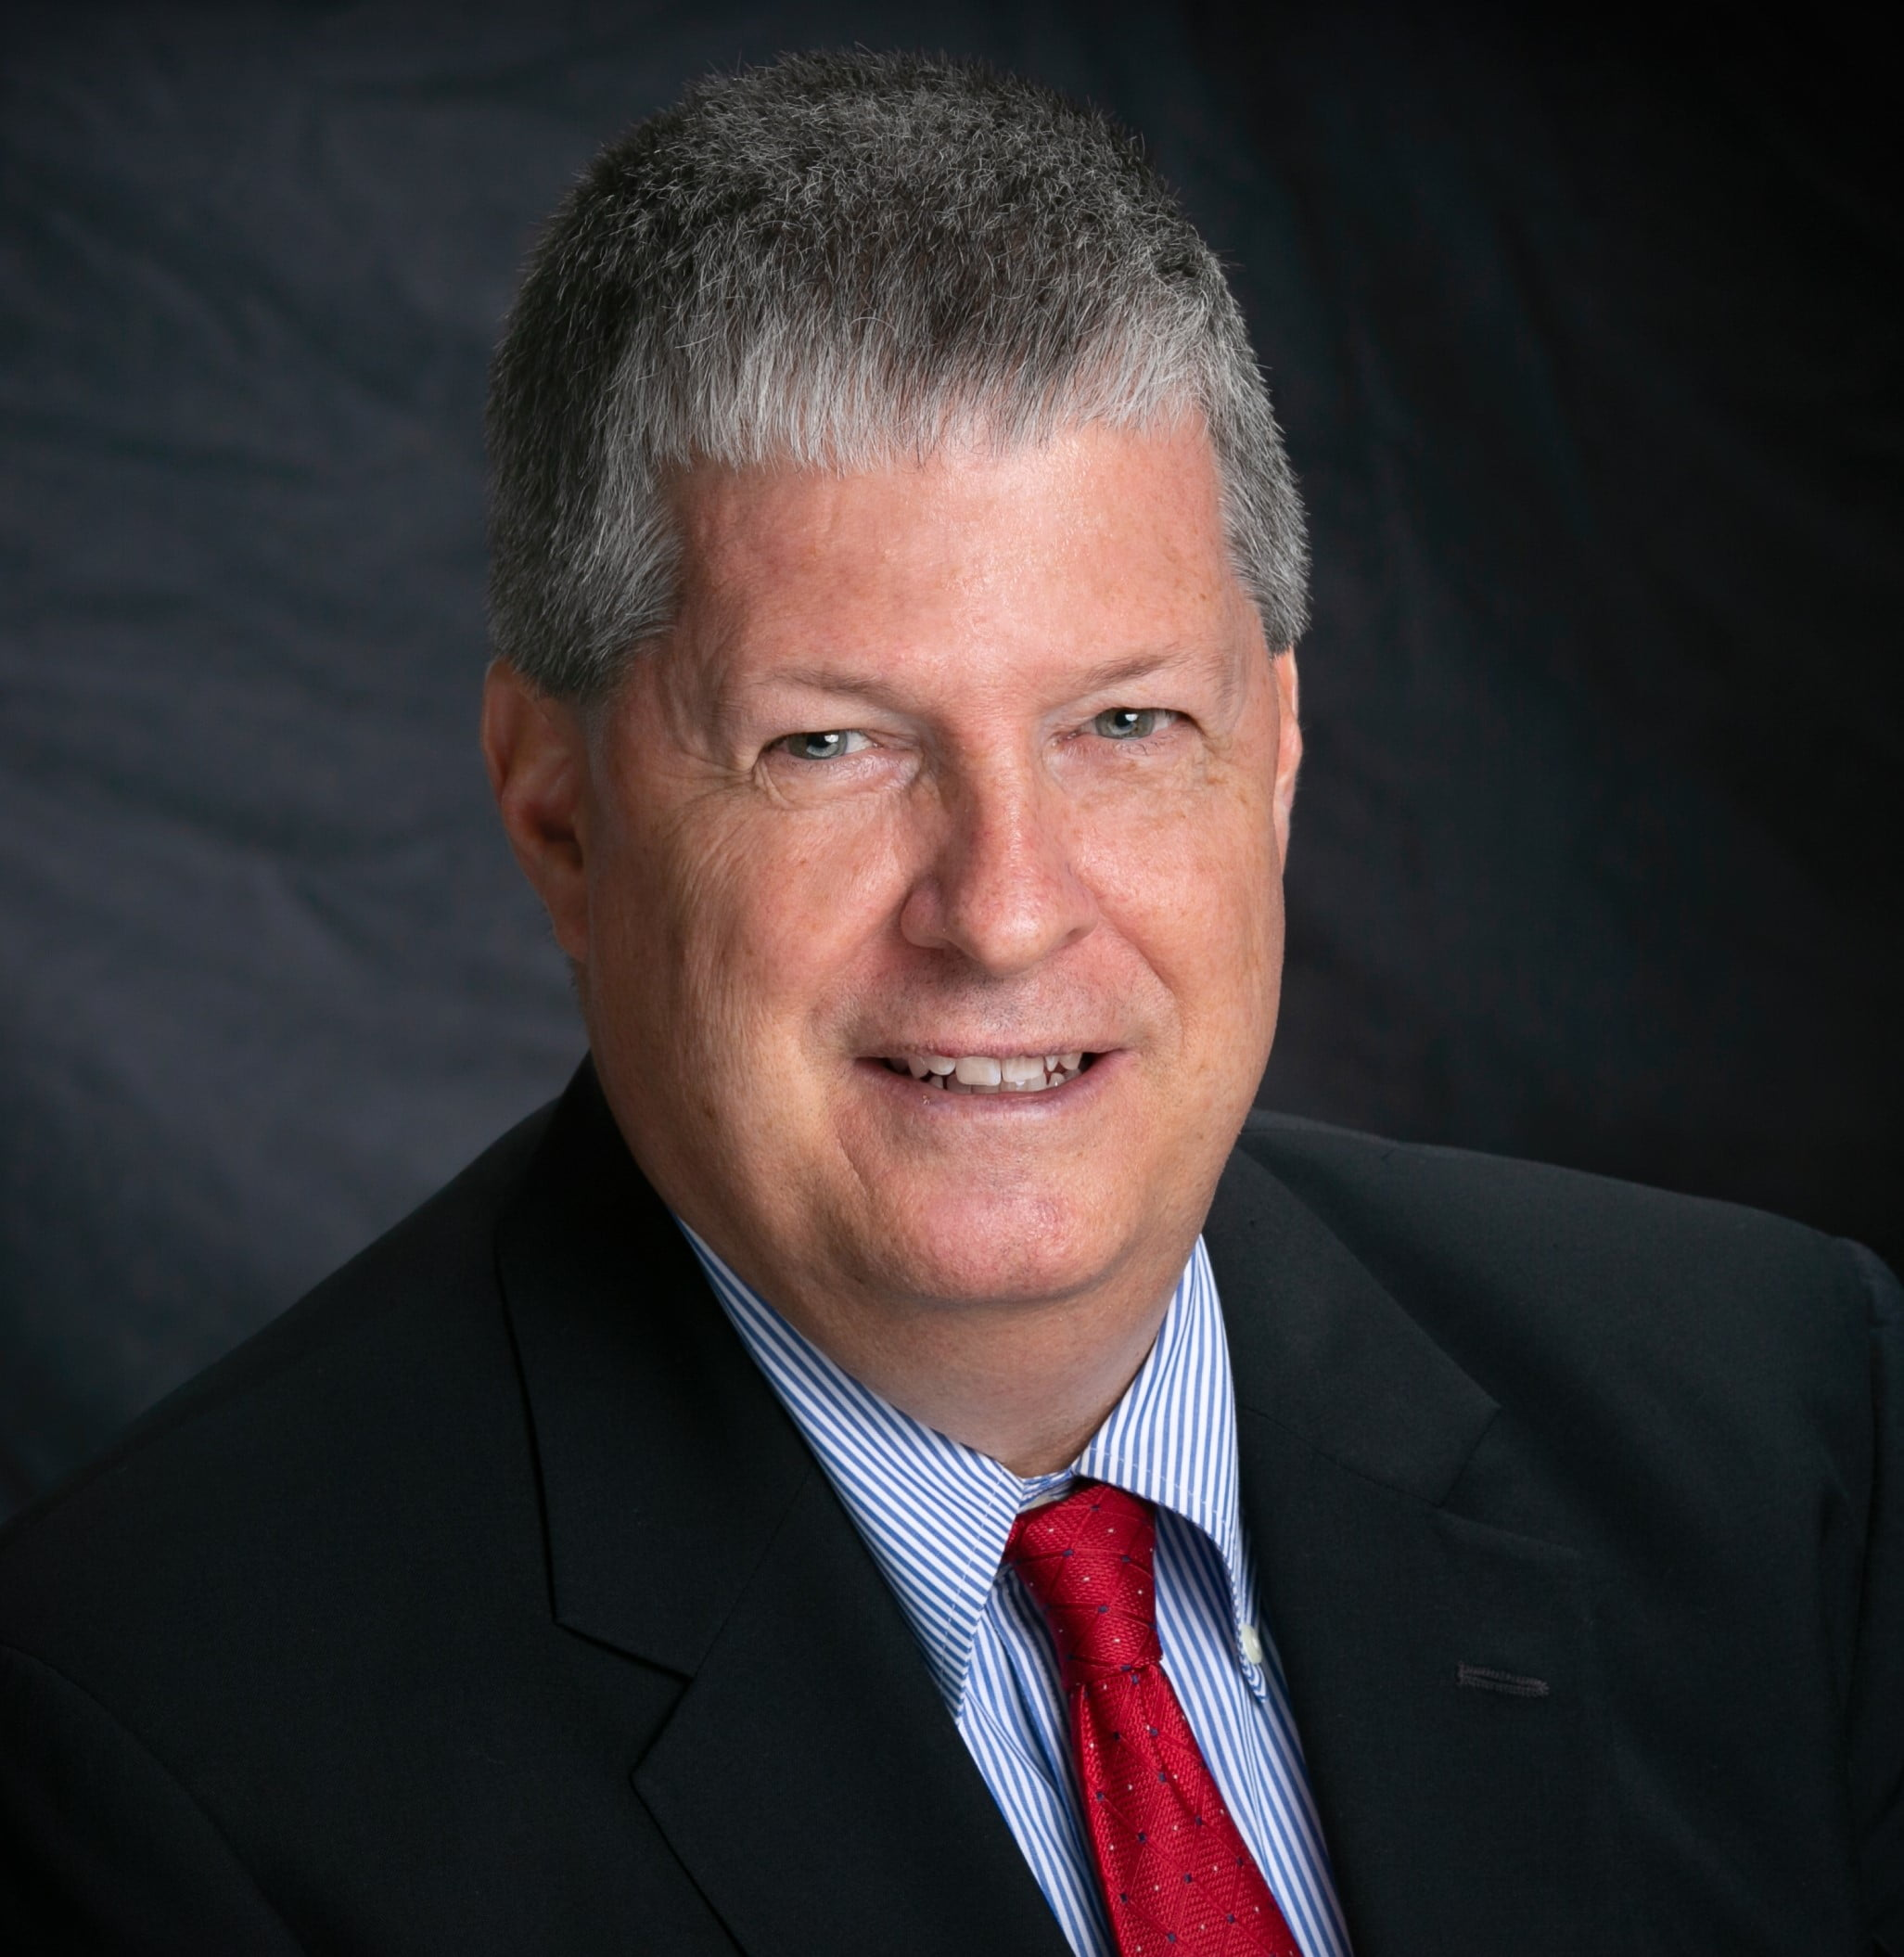 Brad Luttrell Joins Signature Bank as Senior Credit Officer